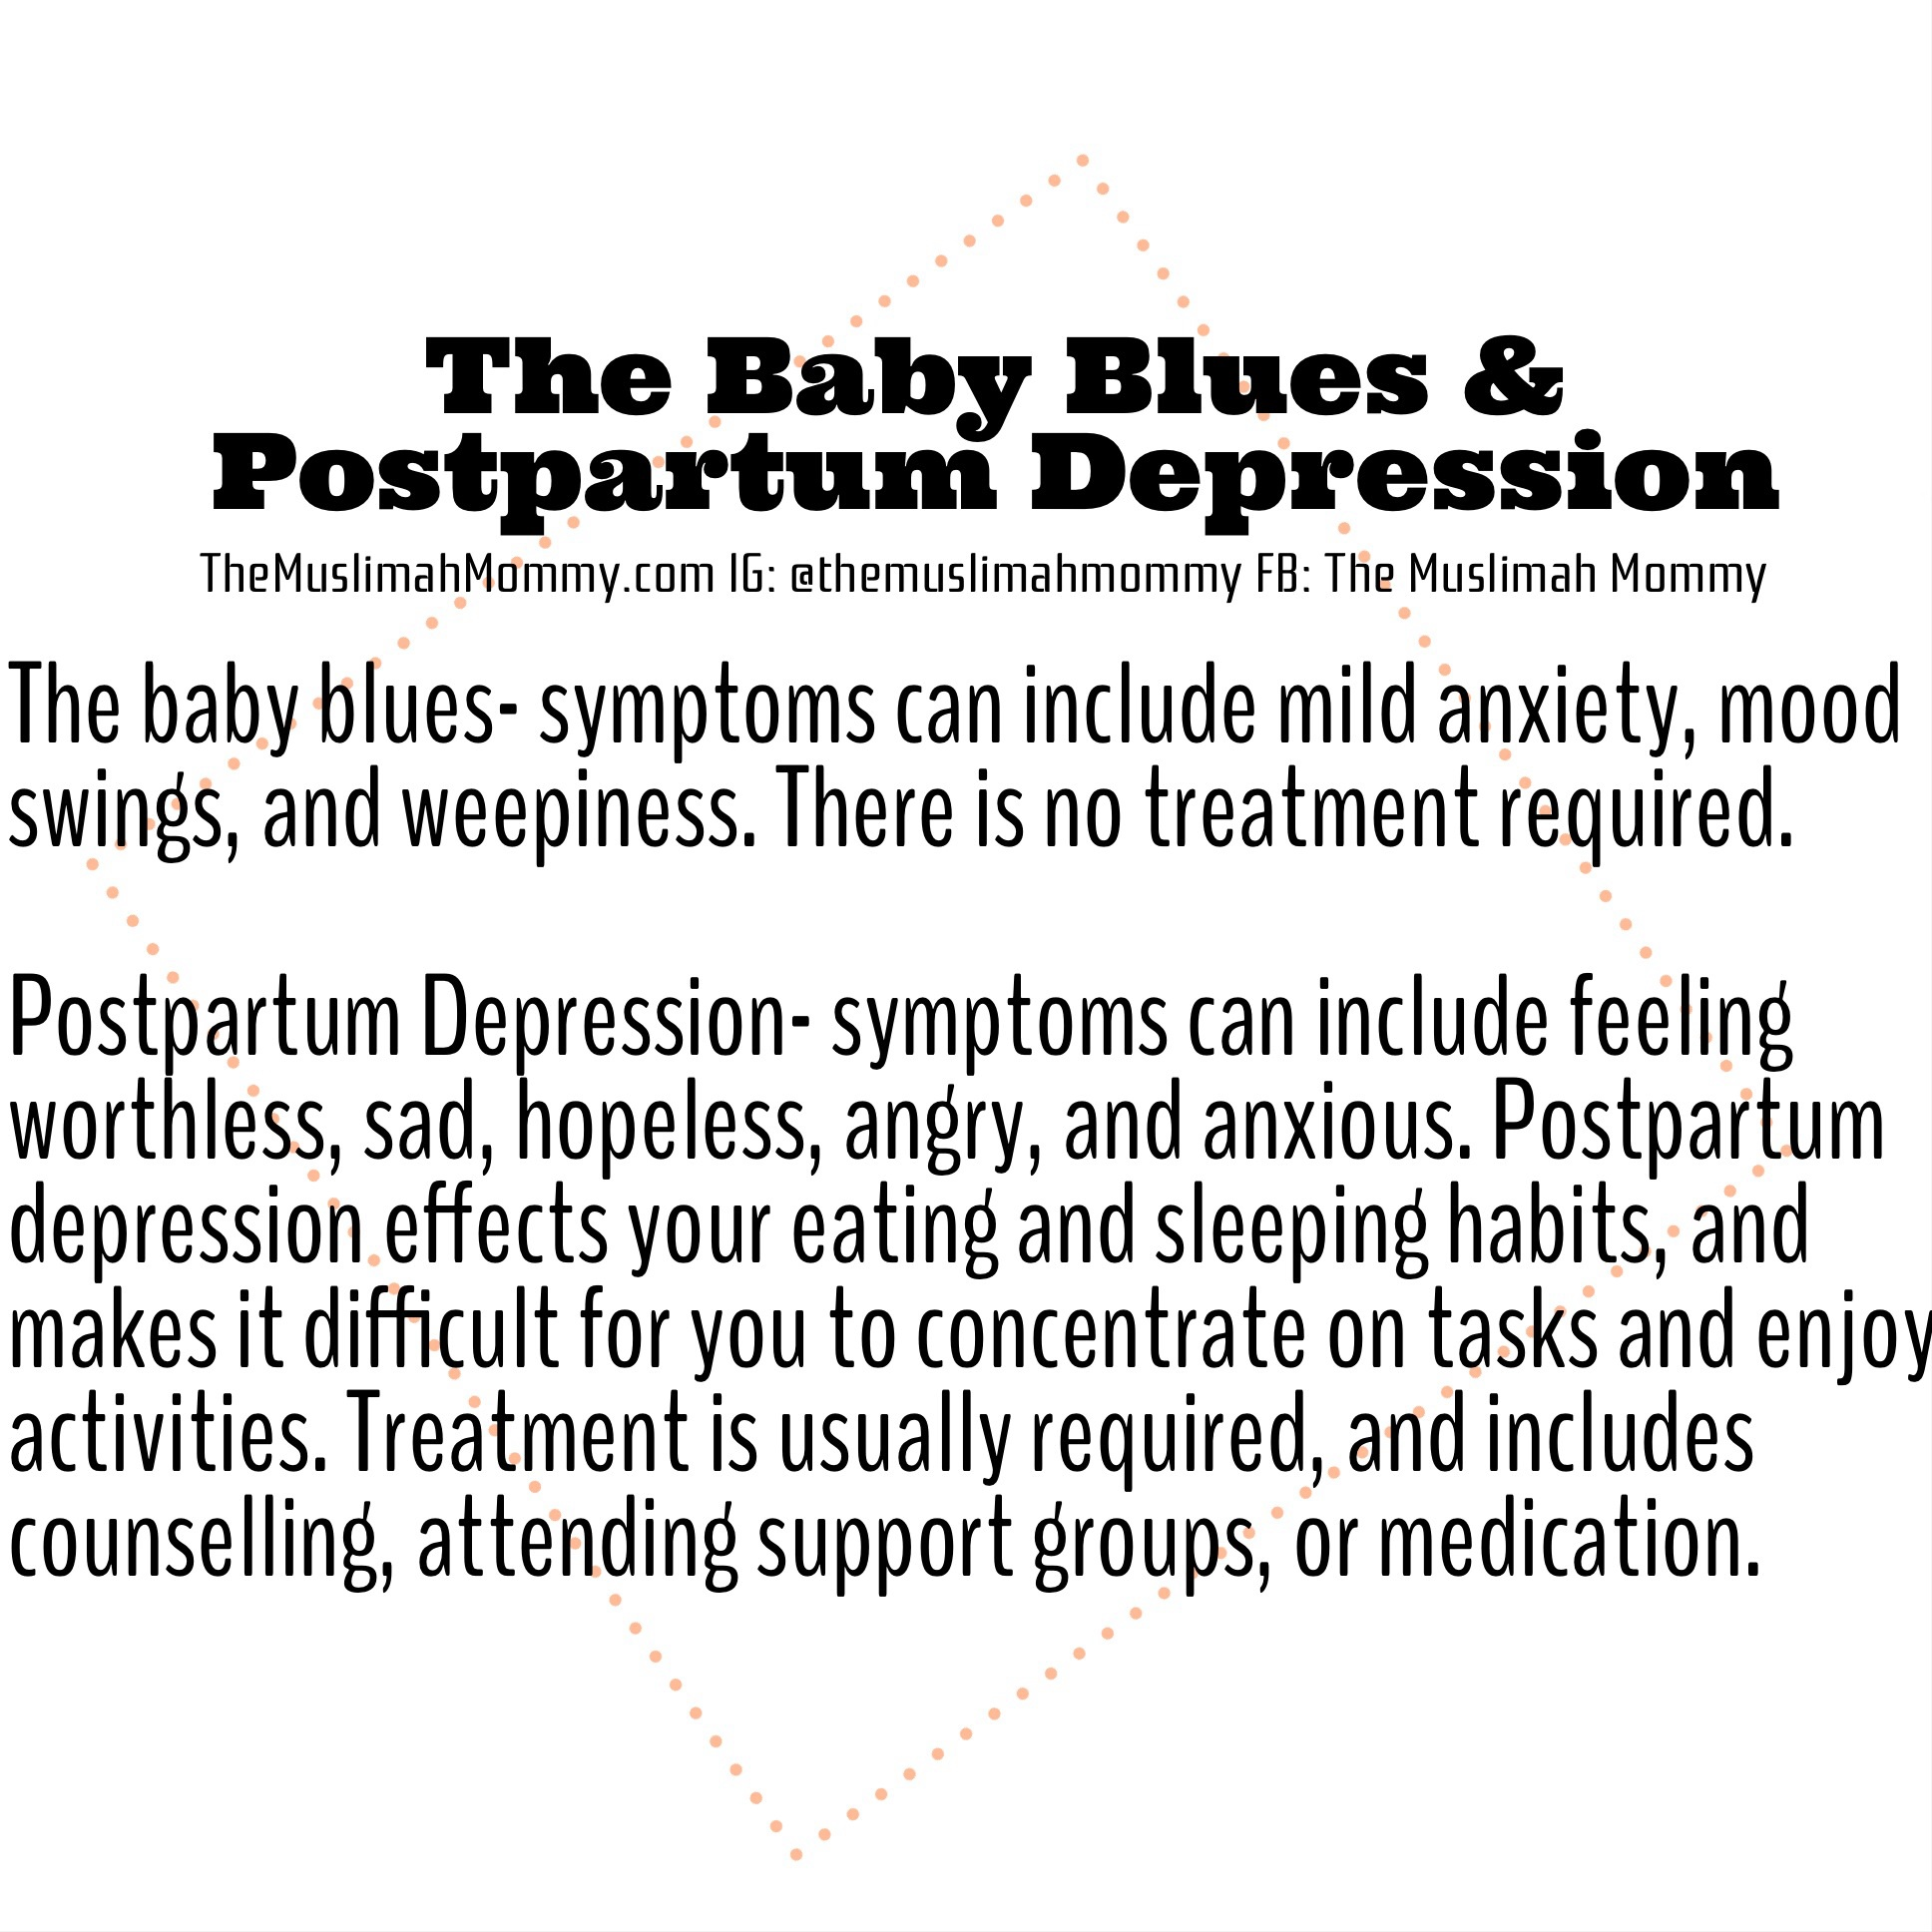 The Baby Blues & Postpartum Depression - The Muslimah Mommy